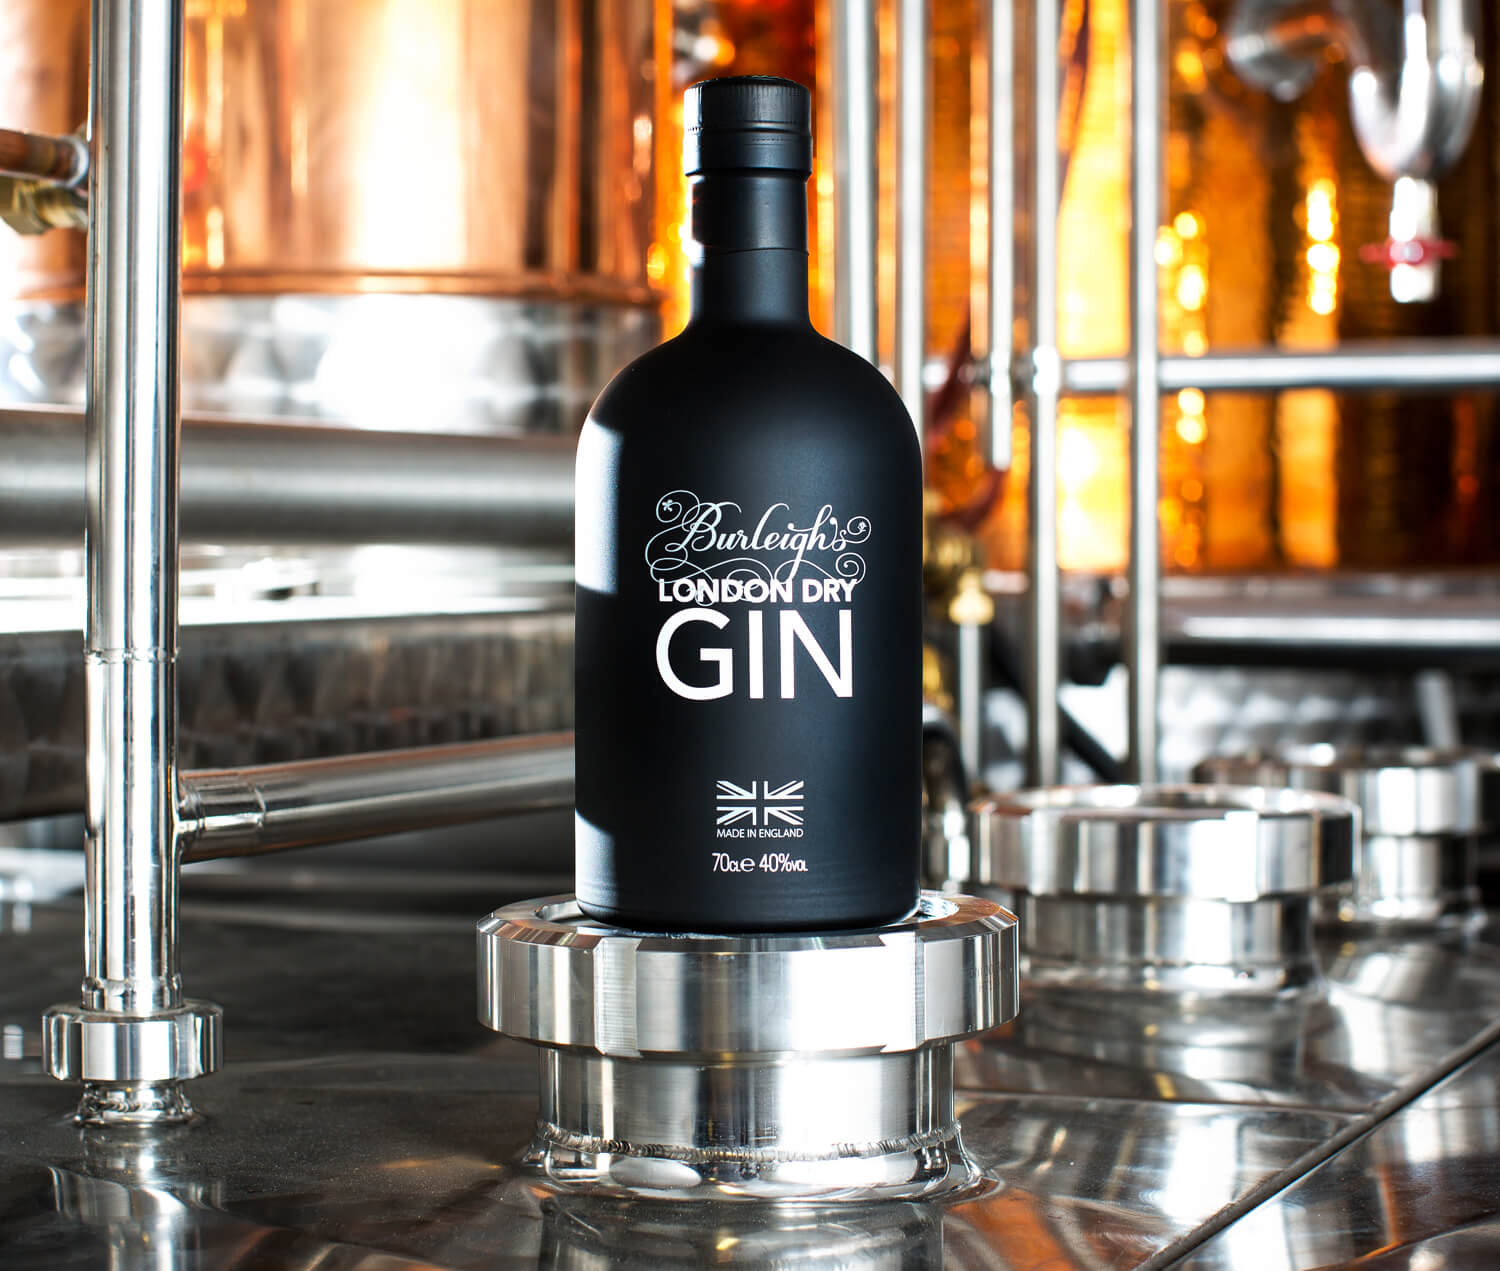 Burleighs Gin 45 West Distillery